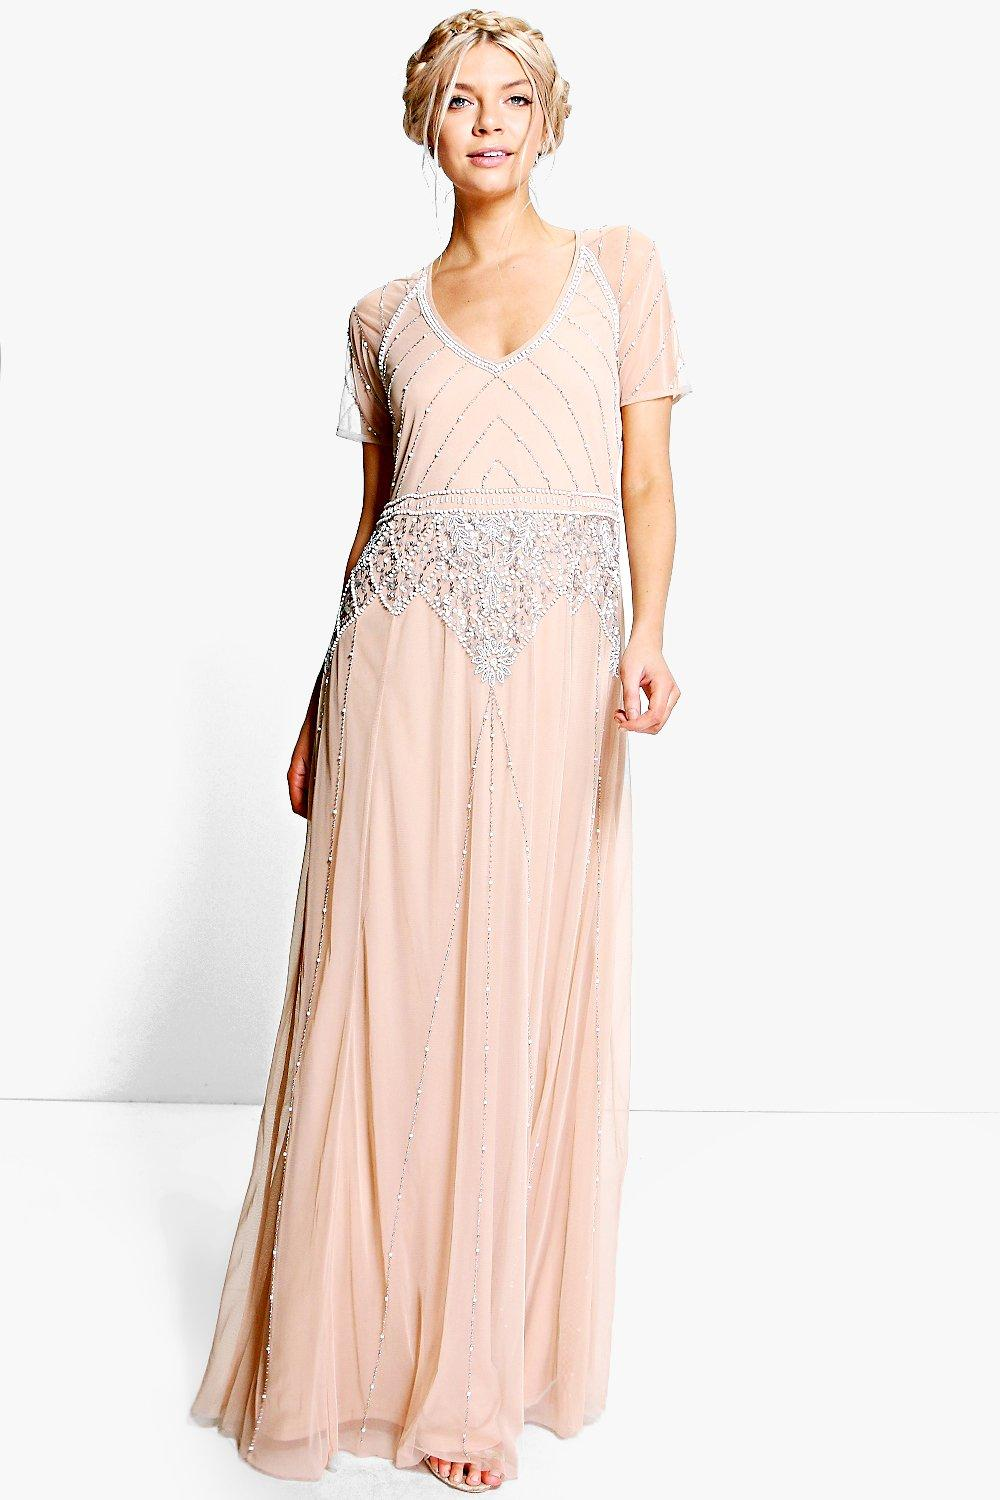 What Did Women Wear in the 1930s? 1930s Fashion Guide Womens Boutique Beaded Cap Sleeve Maxi Dress - Beige - 16 $58.00 AT vintagedancer.com